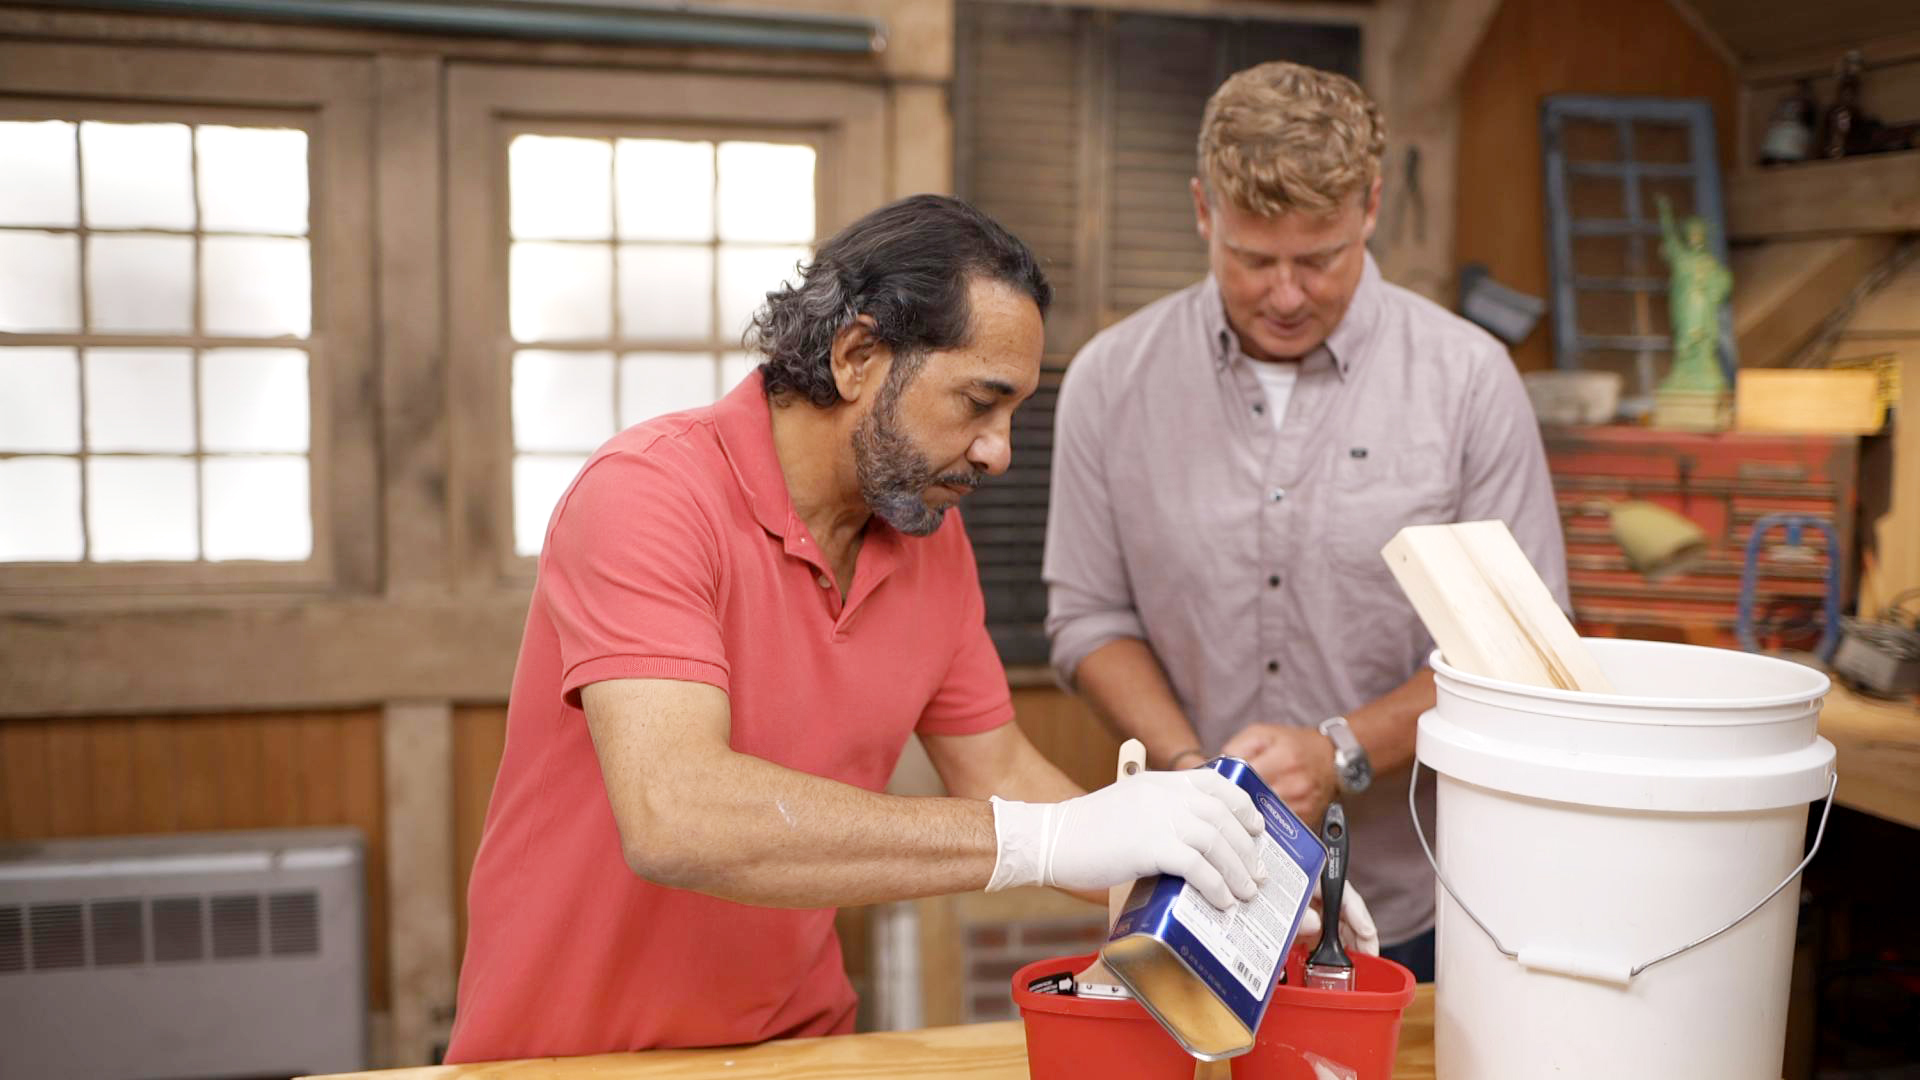 S20 E4, Mauro Henrique teaches Kevin O'Connor how to clean a dried out paint brush